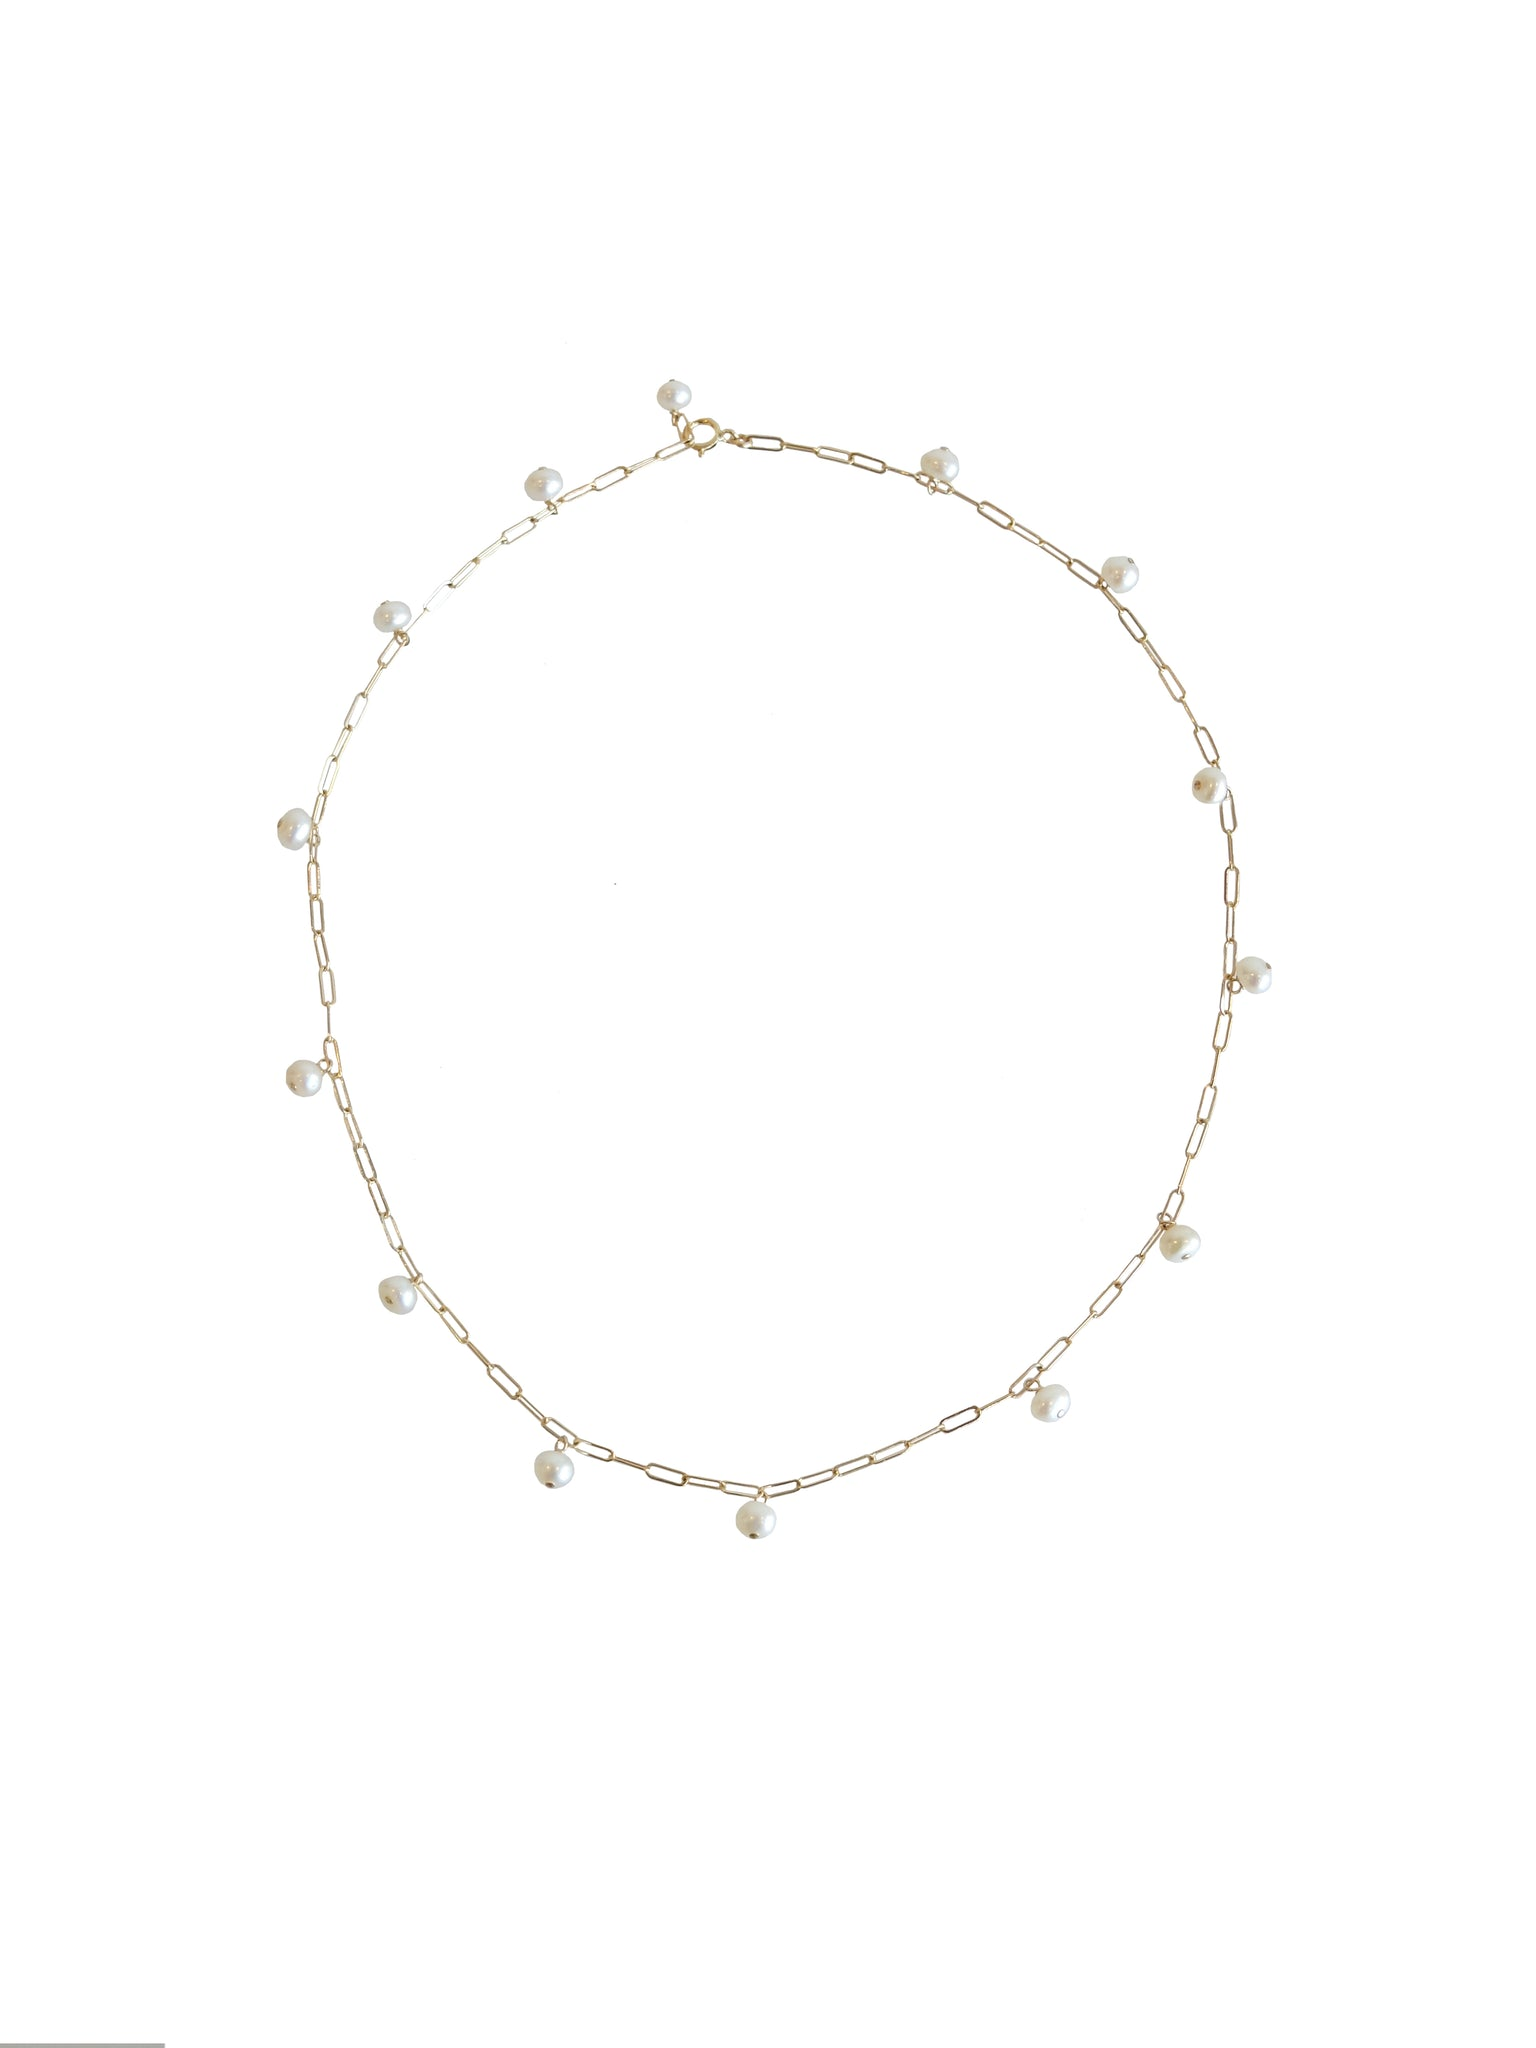 Vista Necklace- Freshwater Pearls